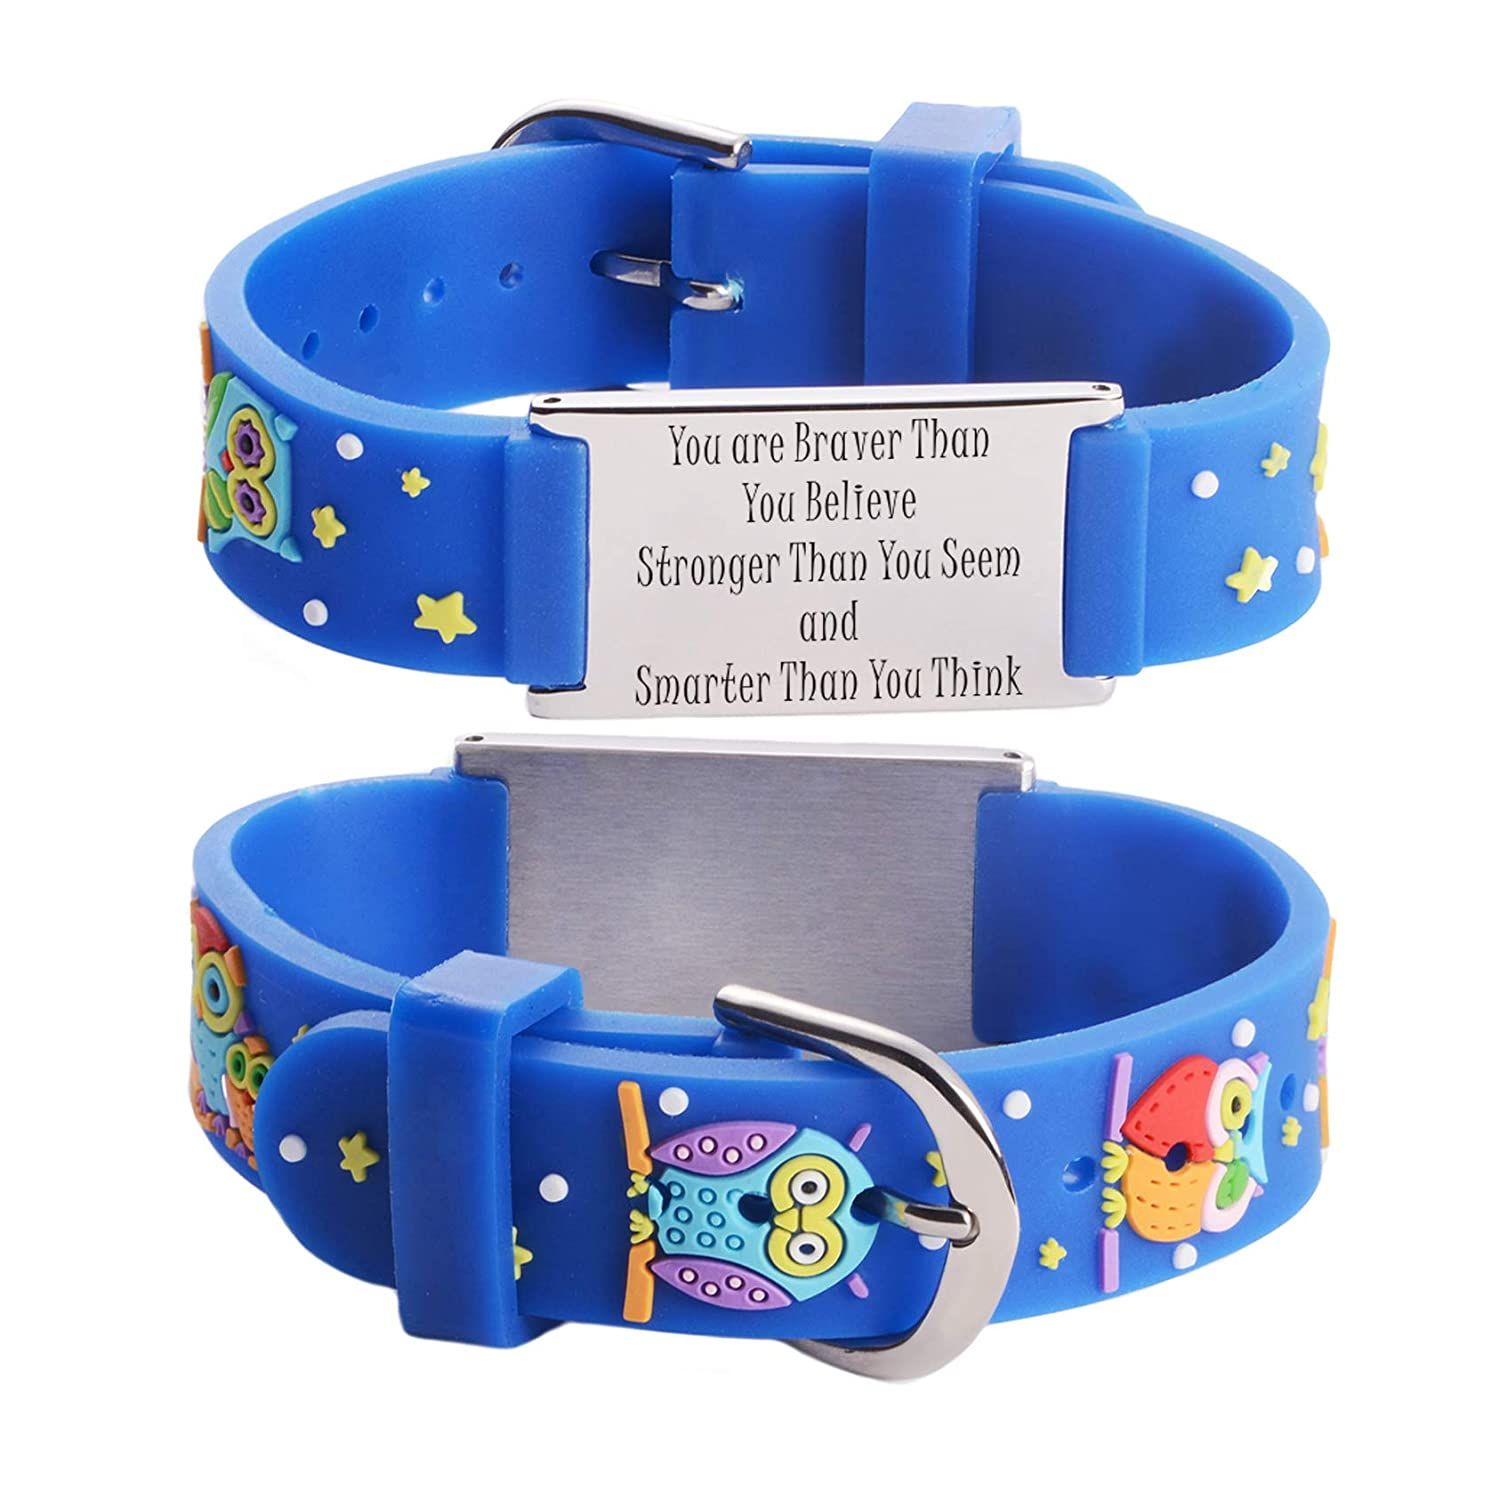 linnalove You are Braver Than You Believe Stronger Than You Seem and Smarter Than You Think Inspirational Bracelet for Boys /& Girl iD-0021-RG Teens